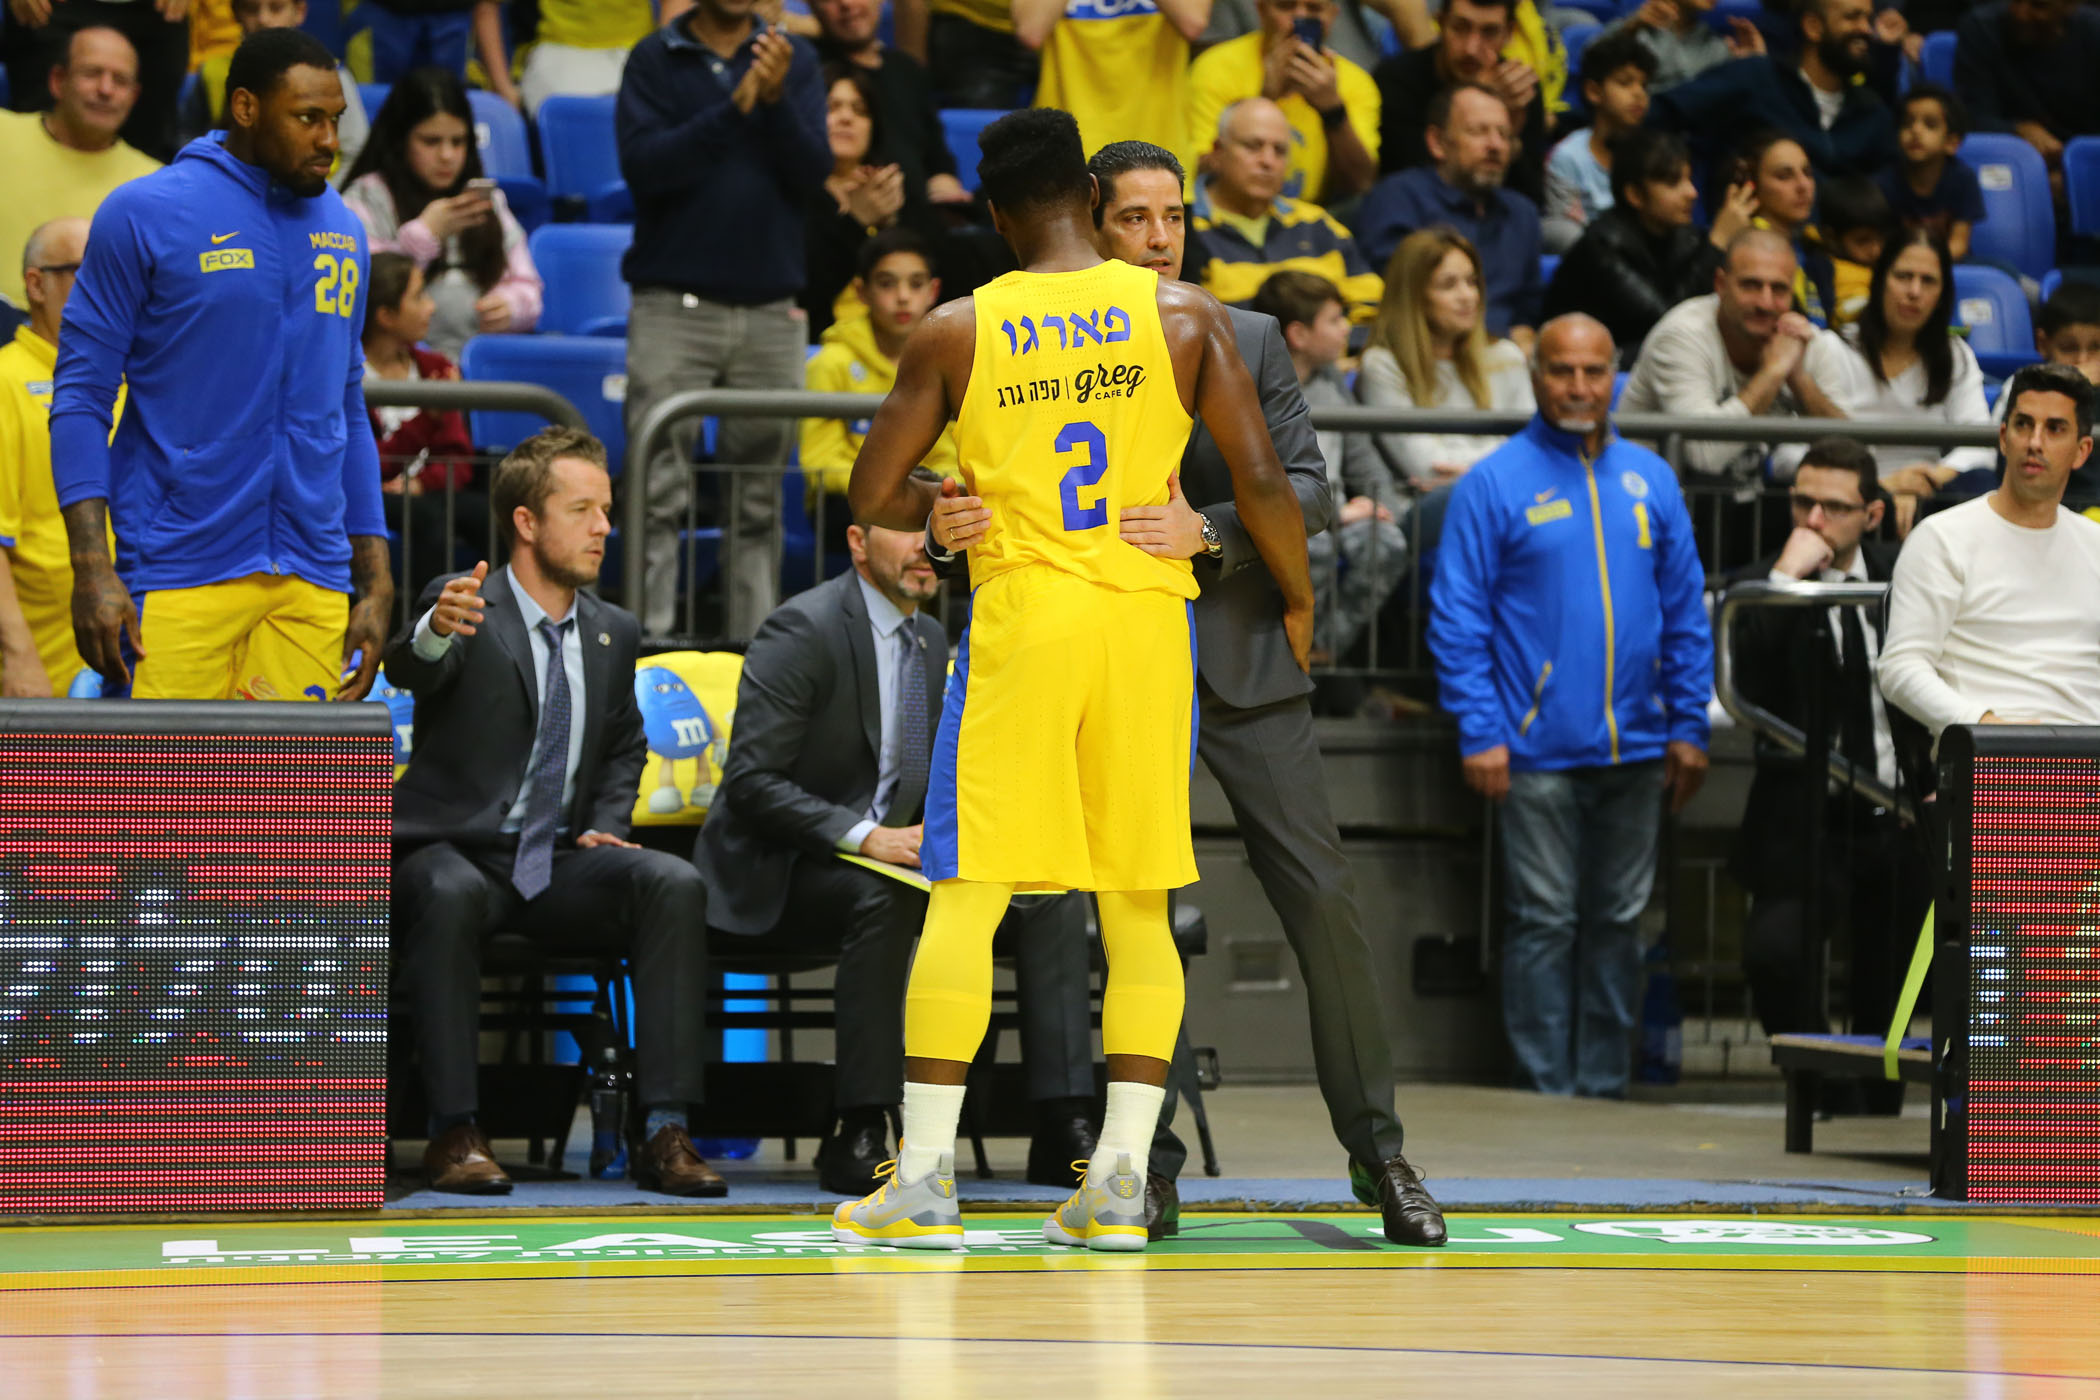 Day 16: Maccabi Tel Aviv - Gilboa/Galil ...